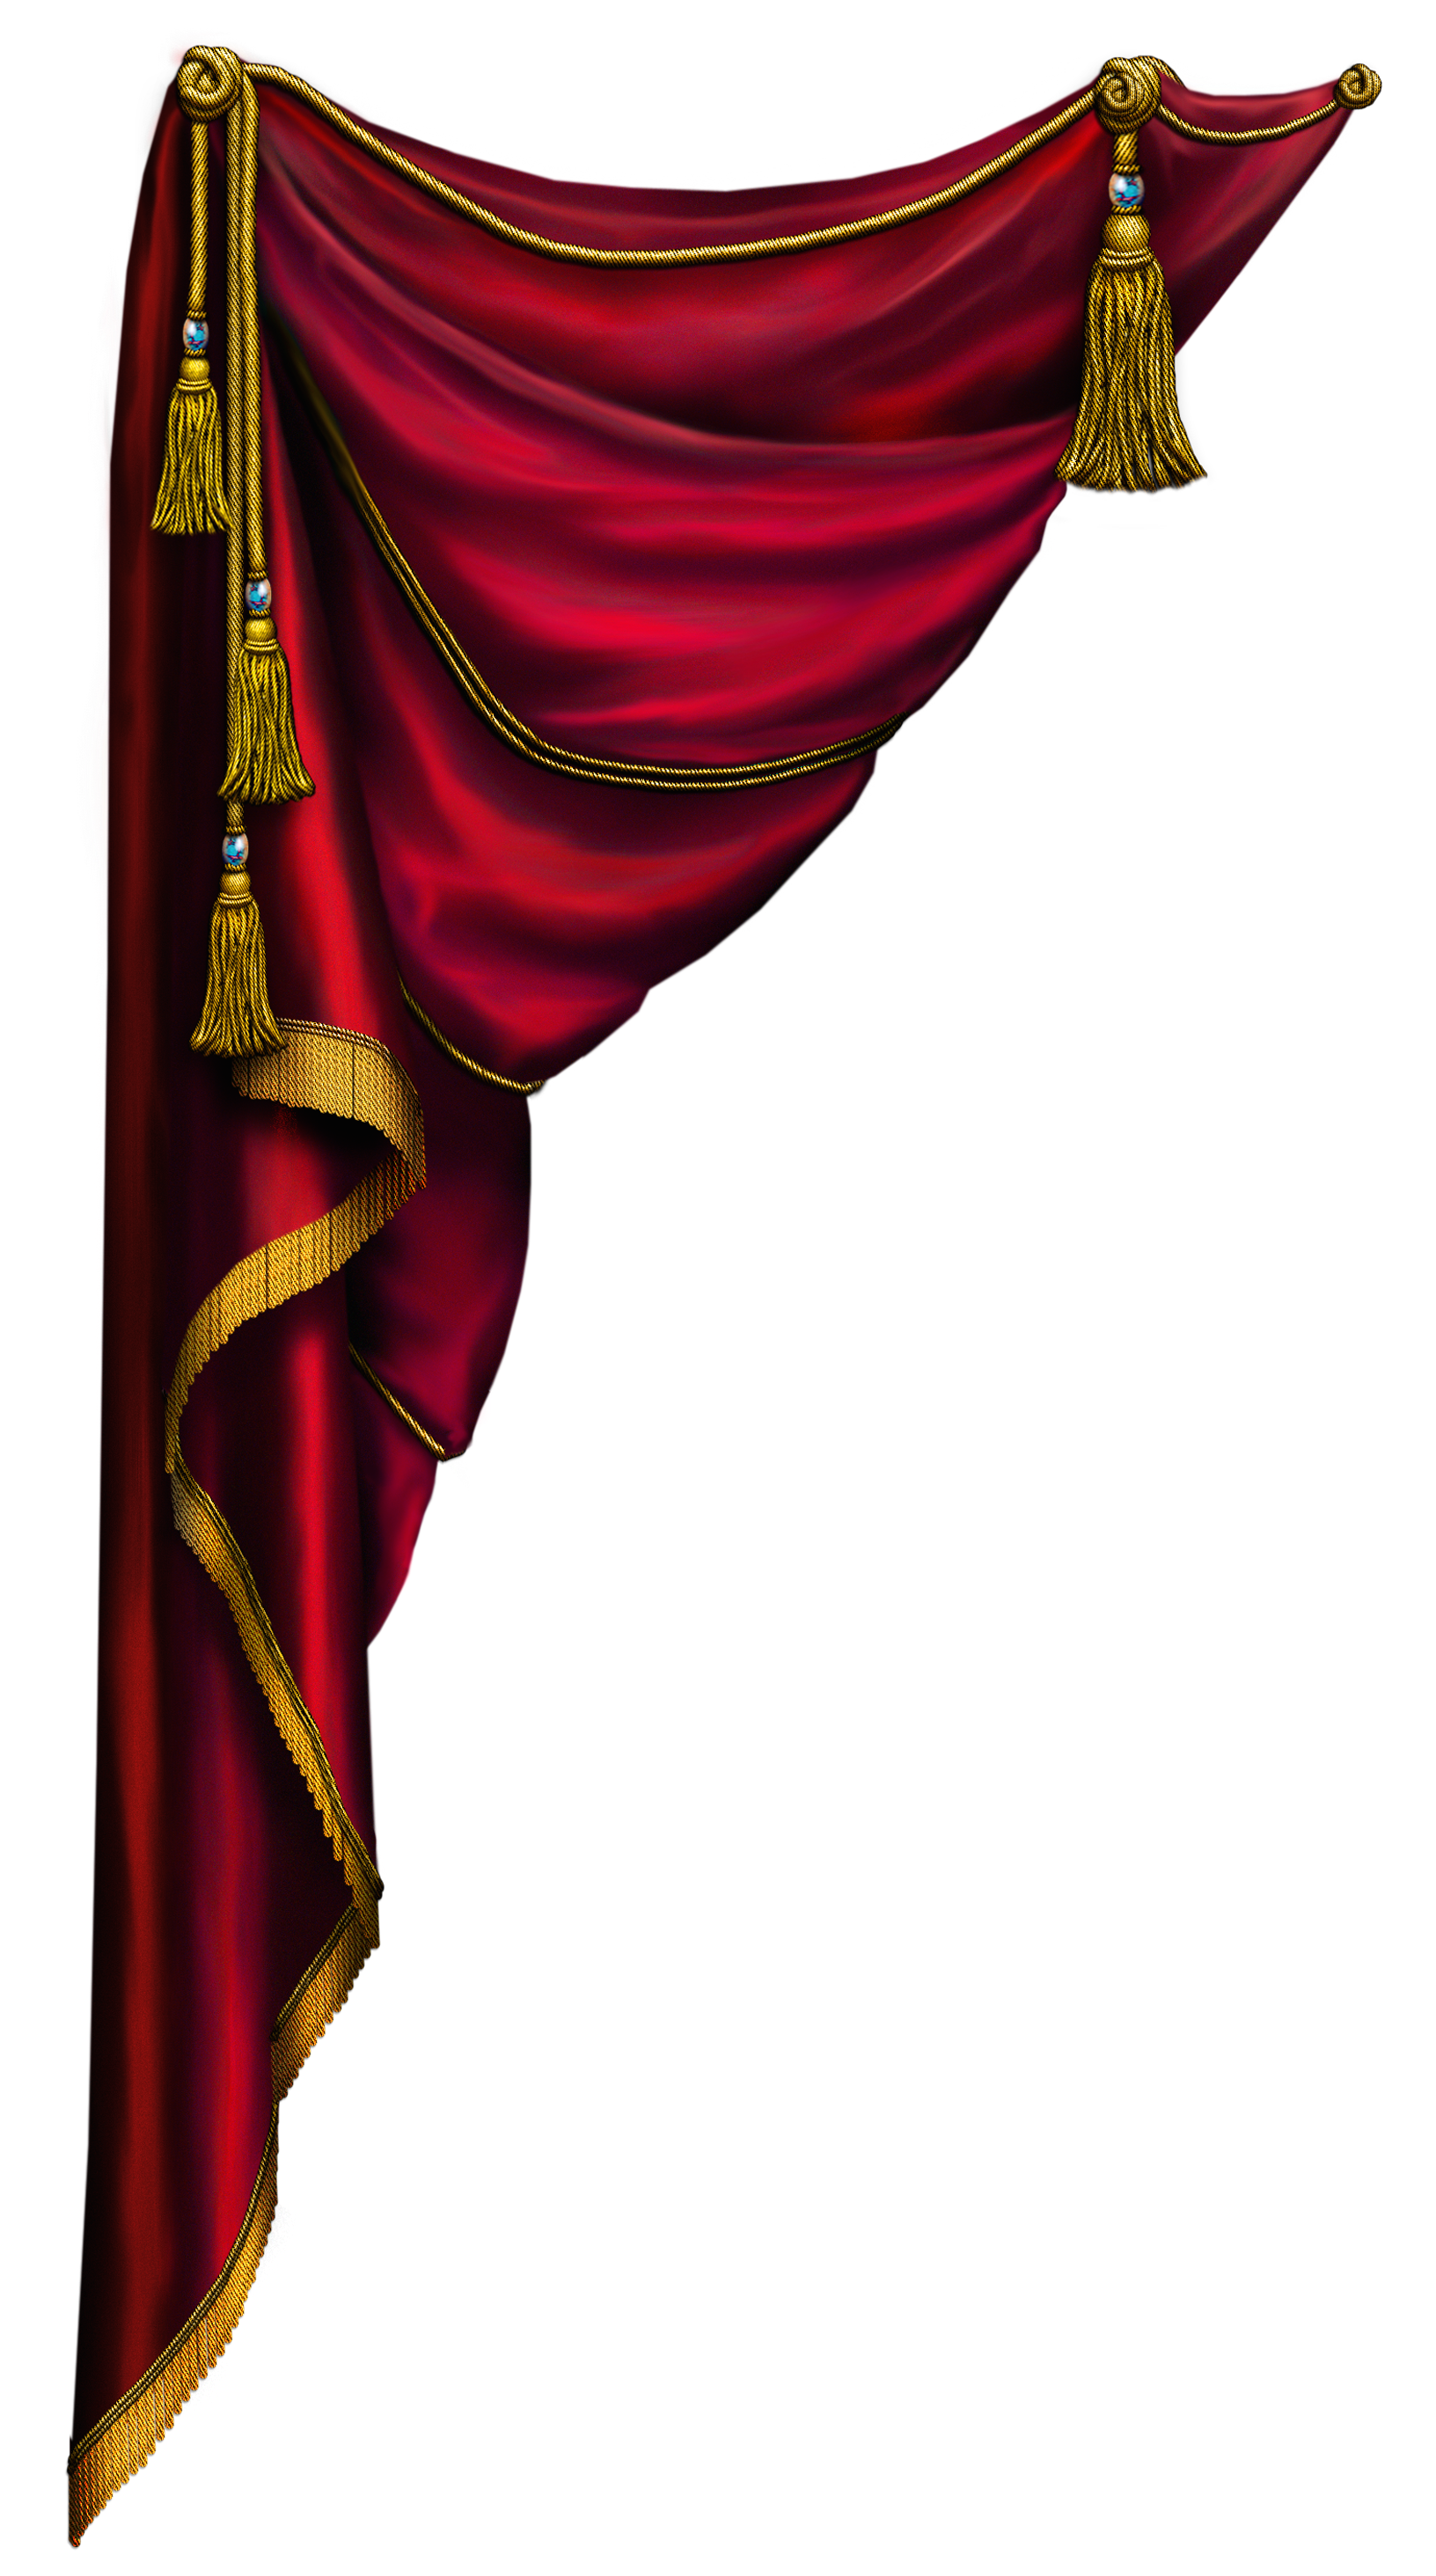 Red Curtain Left  Miscellaneous Images  Pinterest  Red